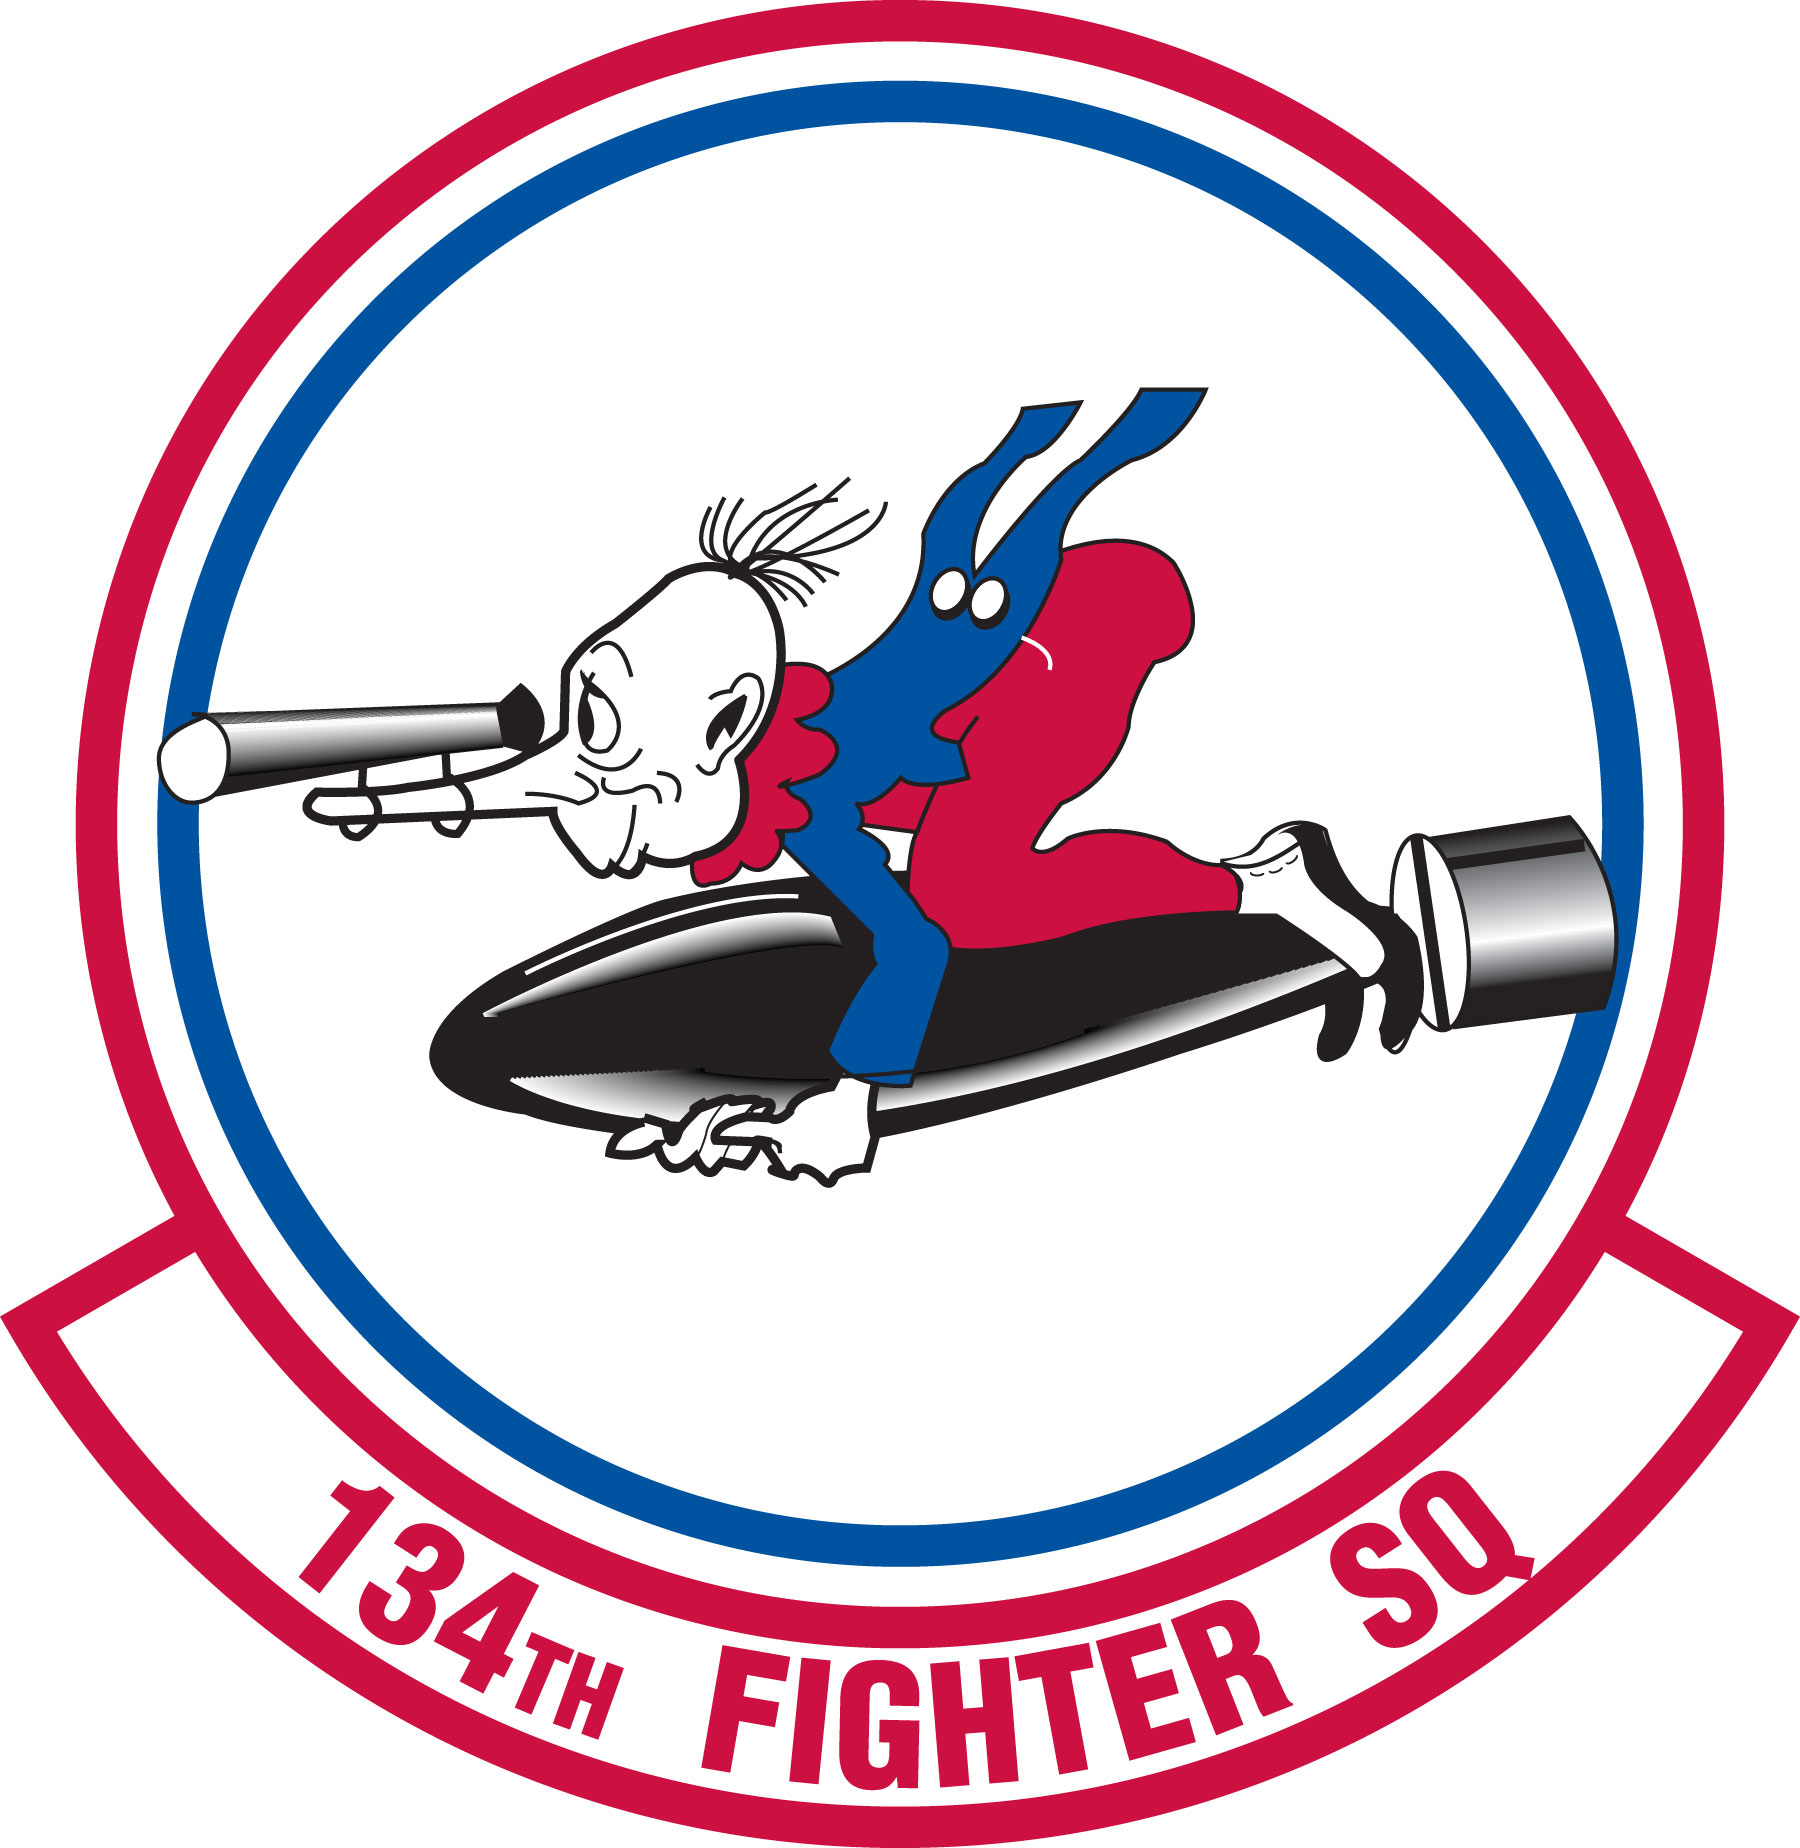 Fighter Squadron Logo 134th Fighter Squadron Emblem